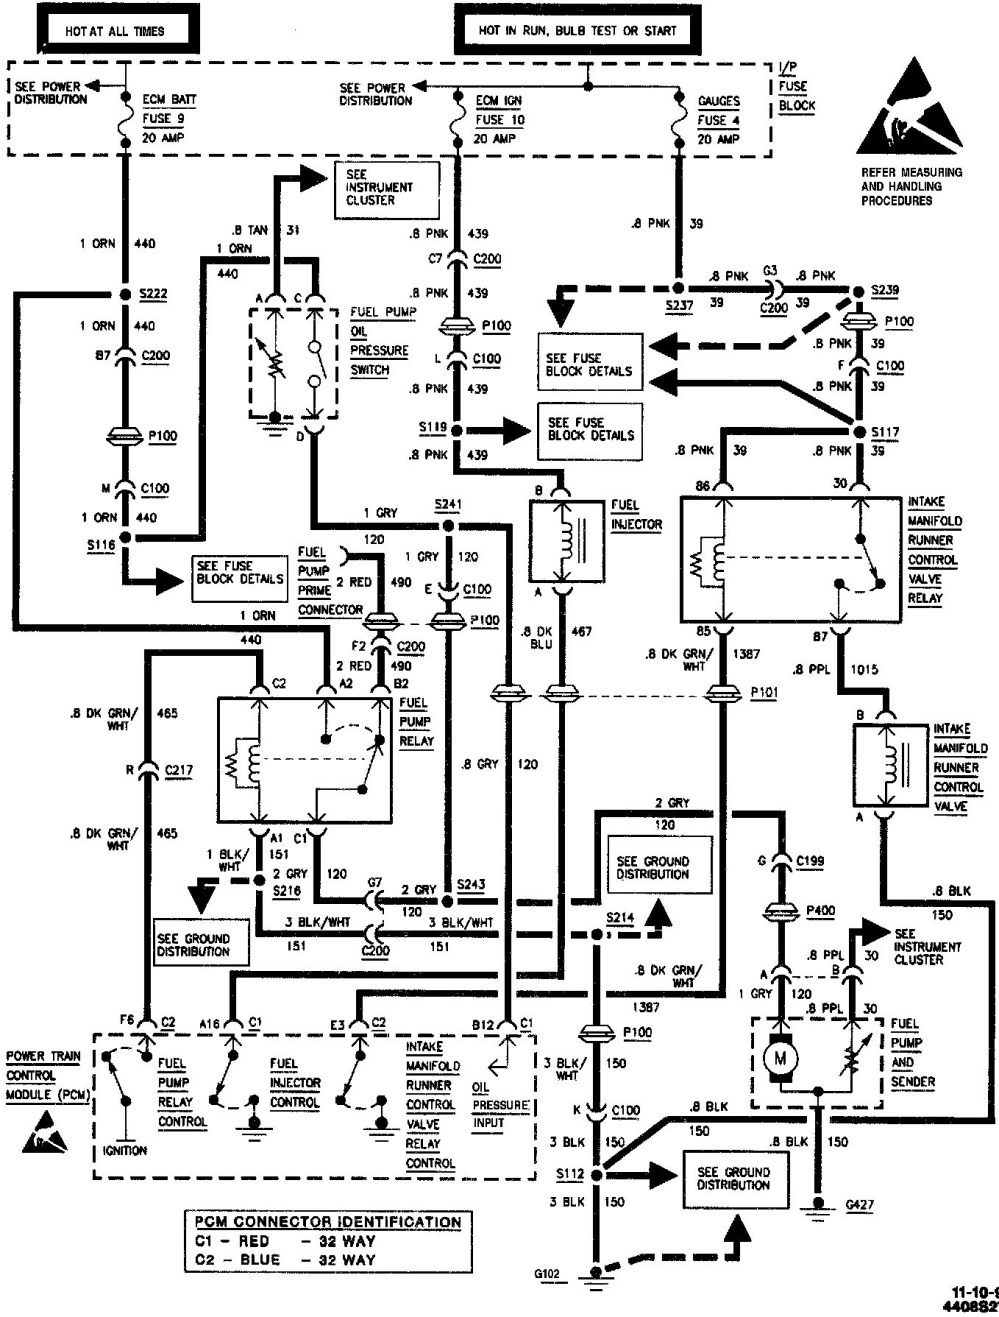 medium resolution of k5 blazer wiring harness wiring diagram expert 2000 blazer radio wiring harness diagram blazer wiring harness diagram